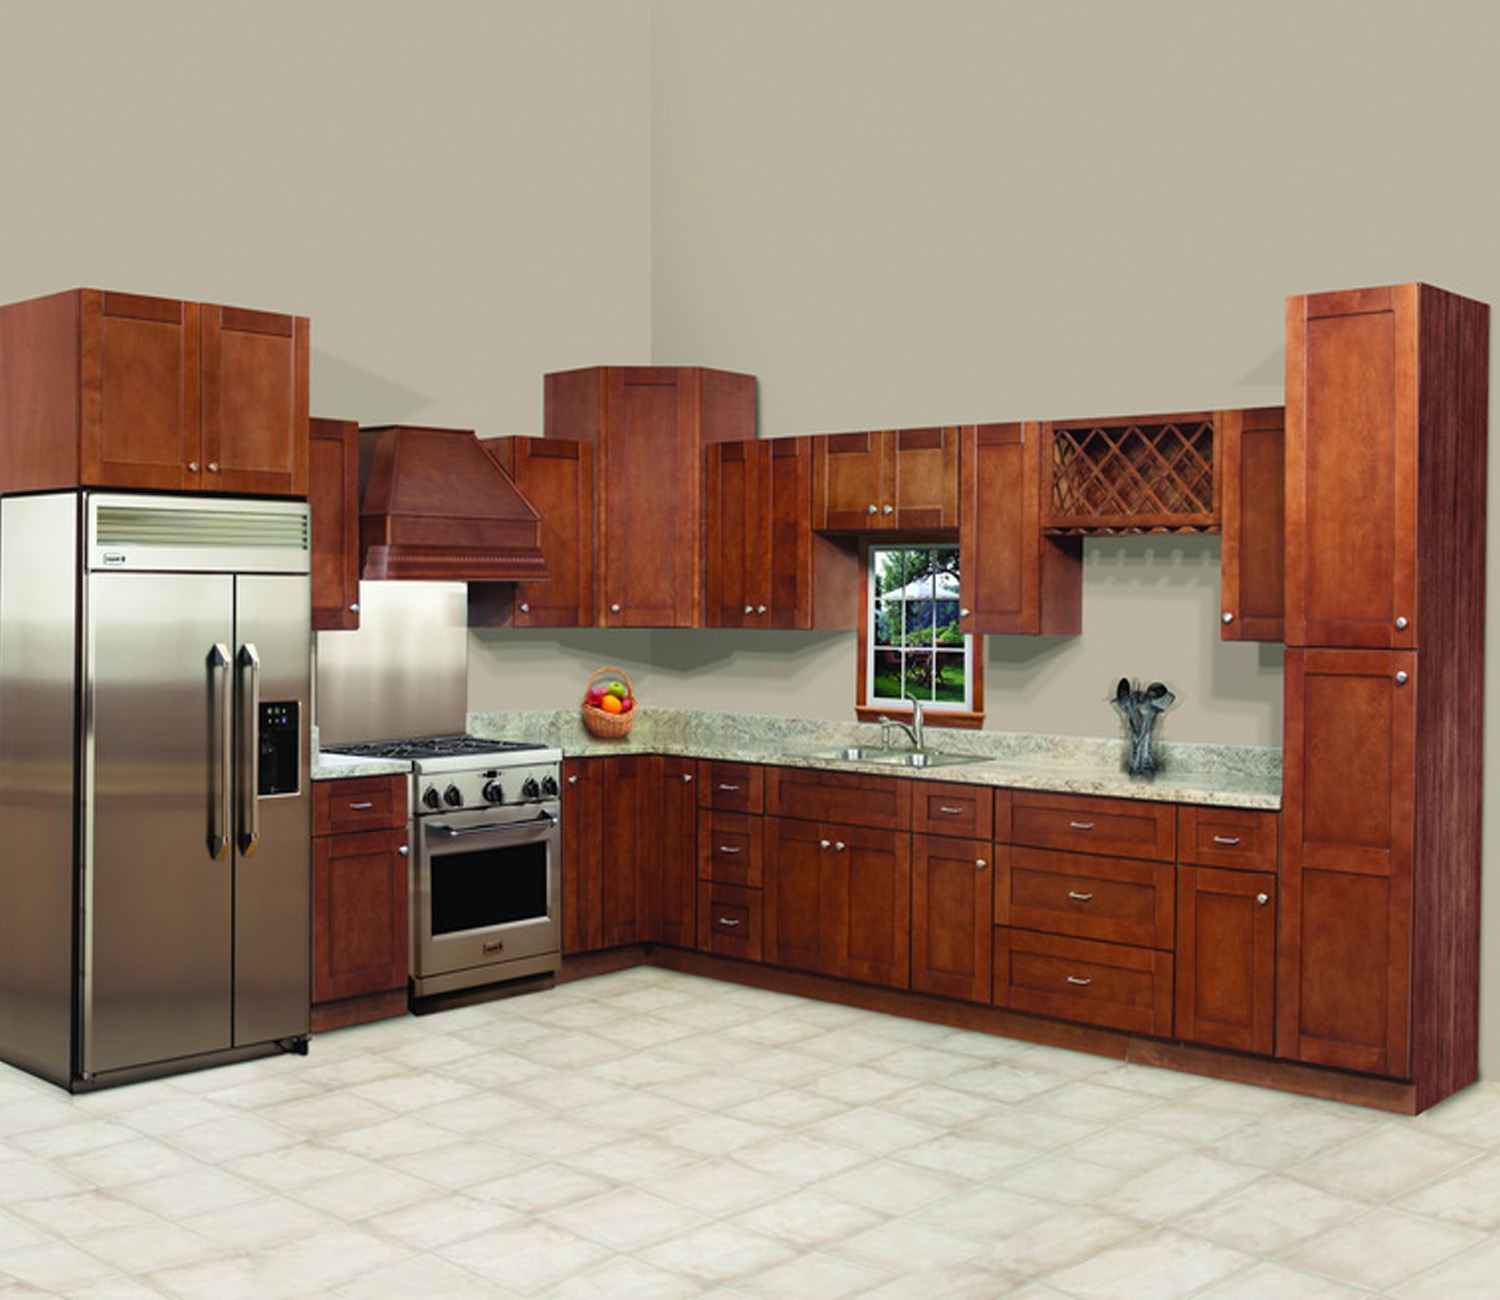 North American style kitchen cabinet